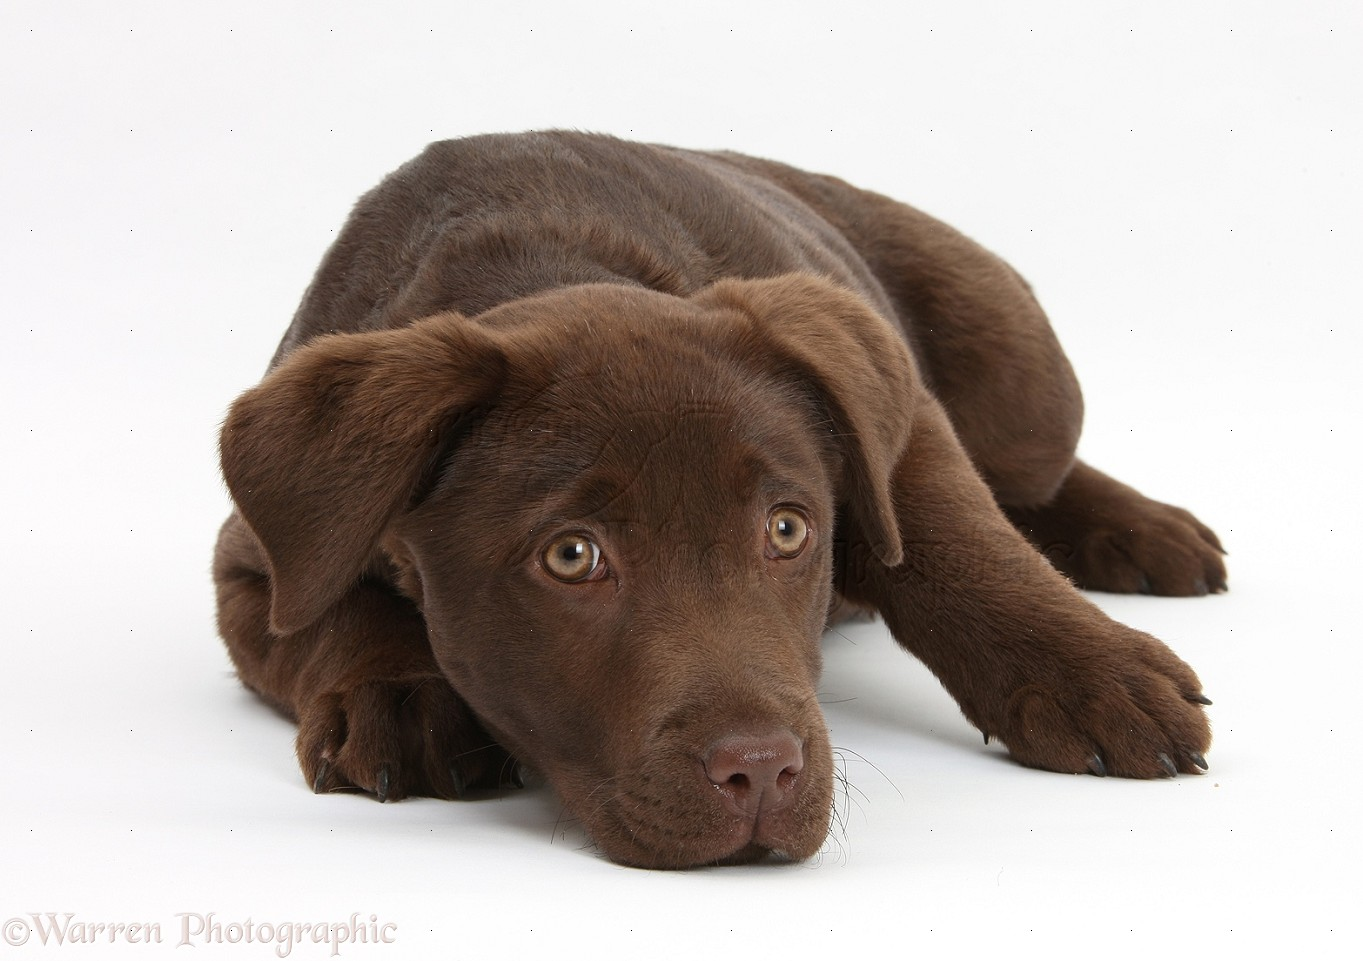 Dog: Chocolate Labrador pup, 3 months old photo - WP23070